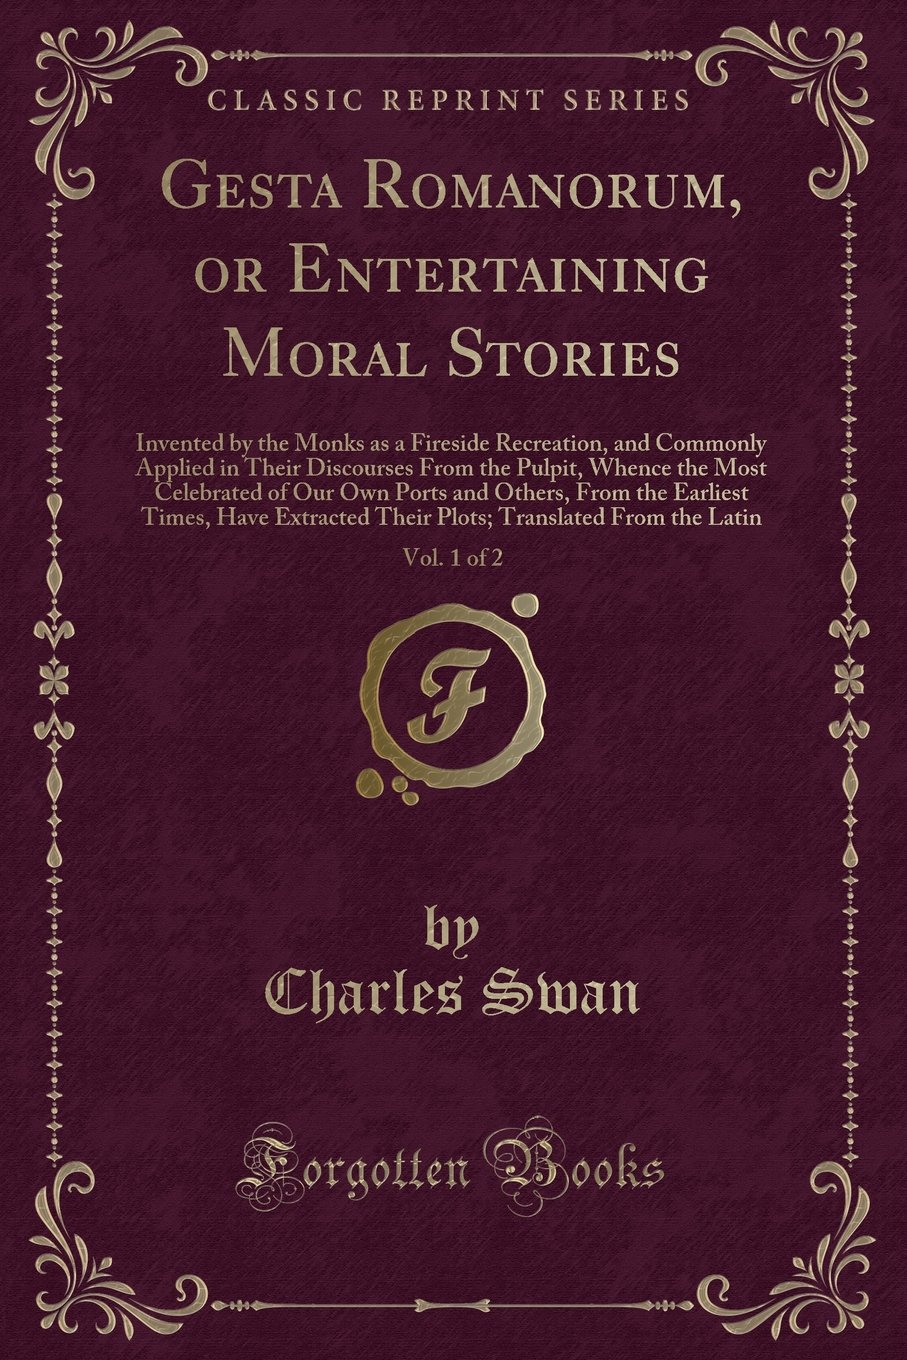 Download Gesta Romanorum, or Entertaining Moral Stories, Vol. 1 of 2: Invented by the Monks as a Fireside Recreation, and Commonly Applied in Their Discourses ... and Others, From the Earliest Times, Have Ex ebook